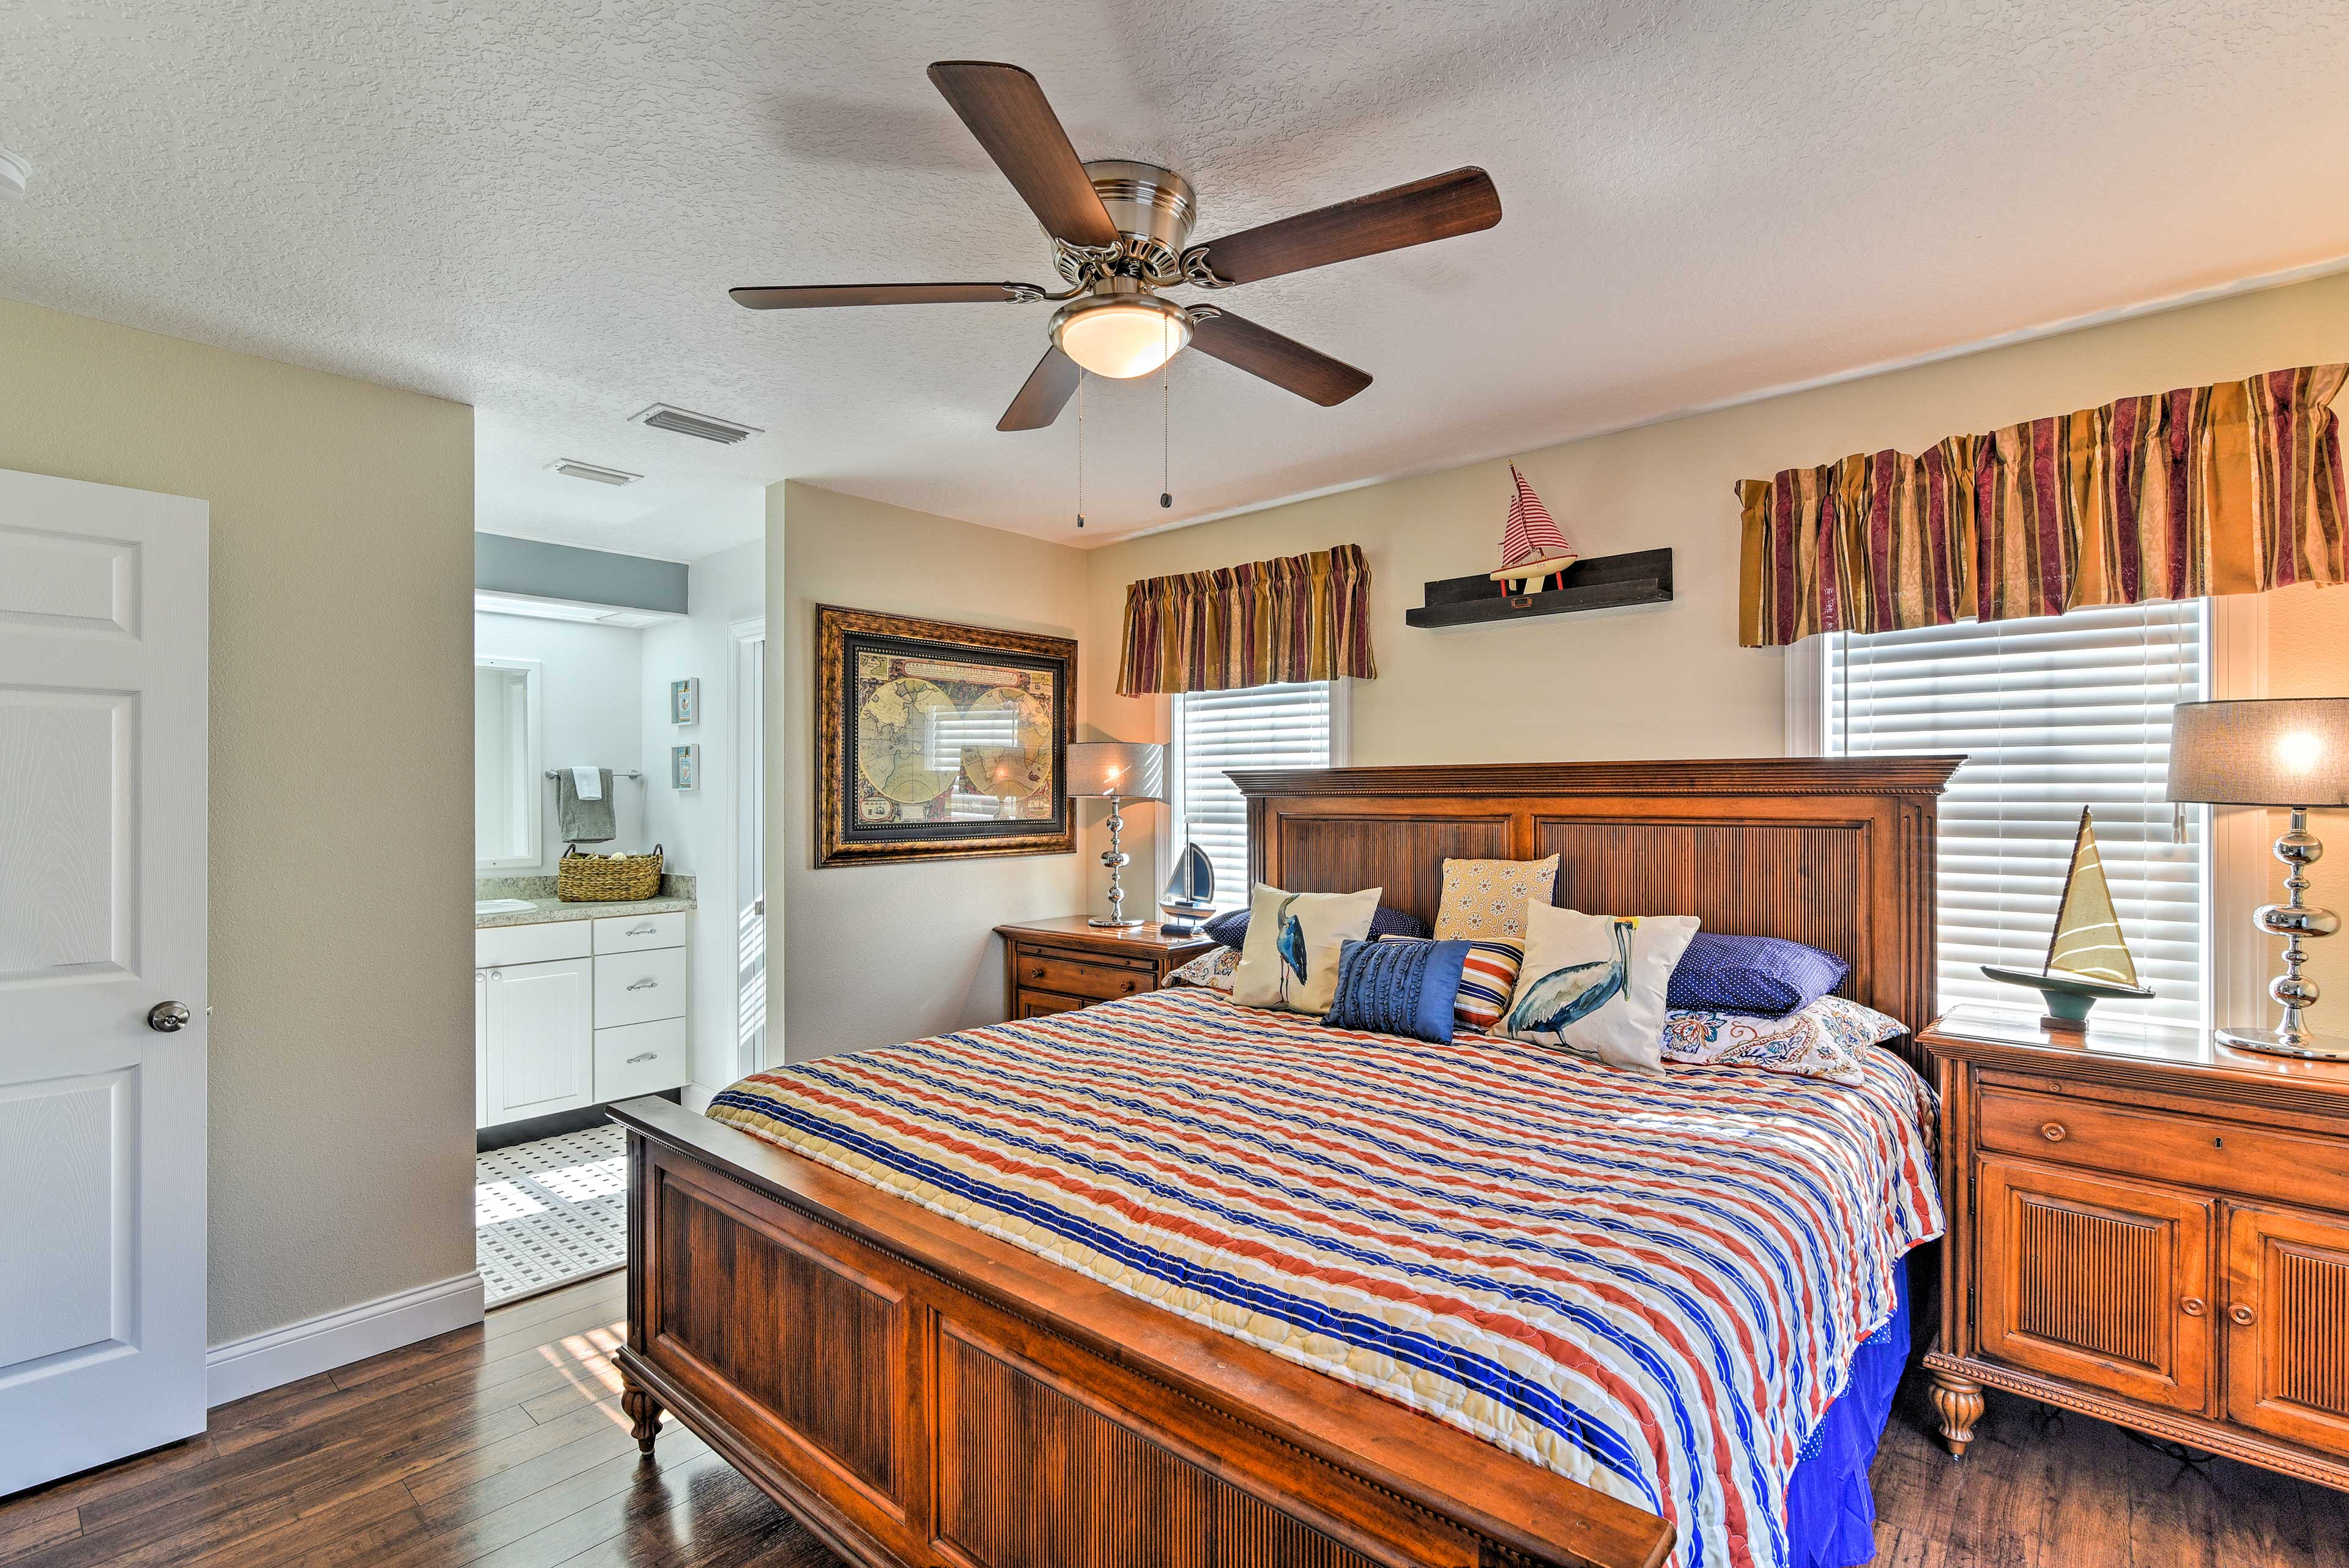 The master bedroom's luxury amenities give it a 5-star feel.